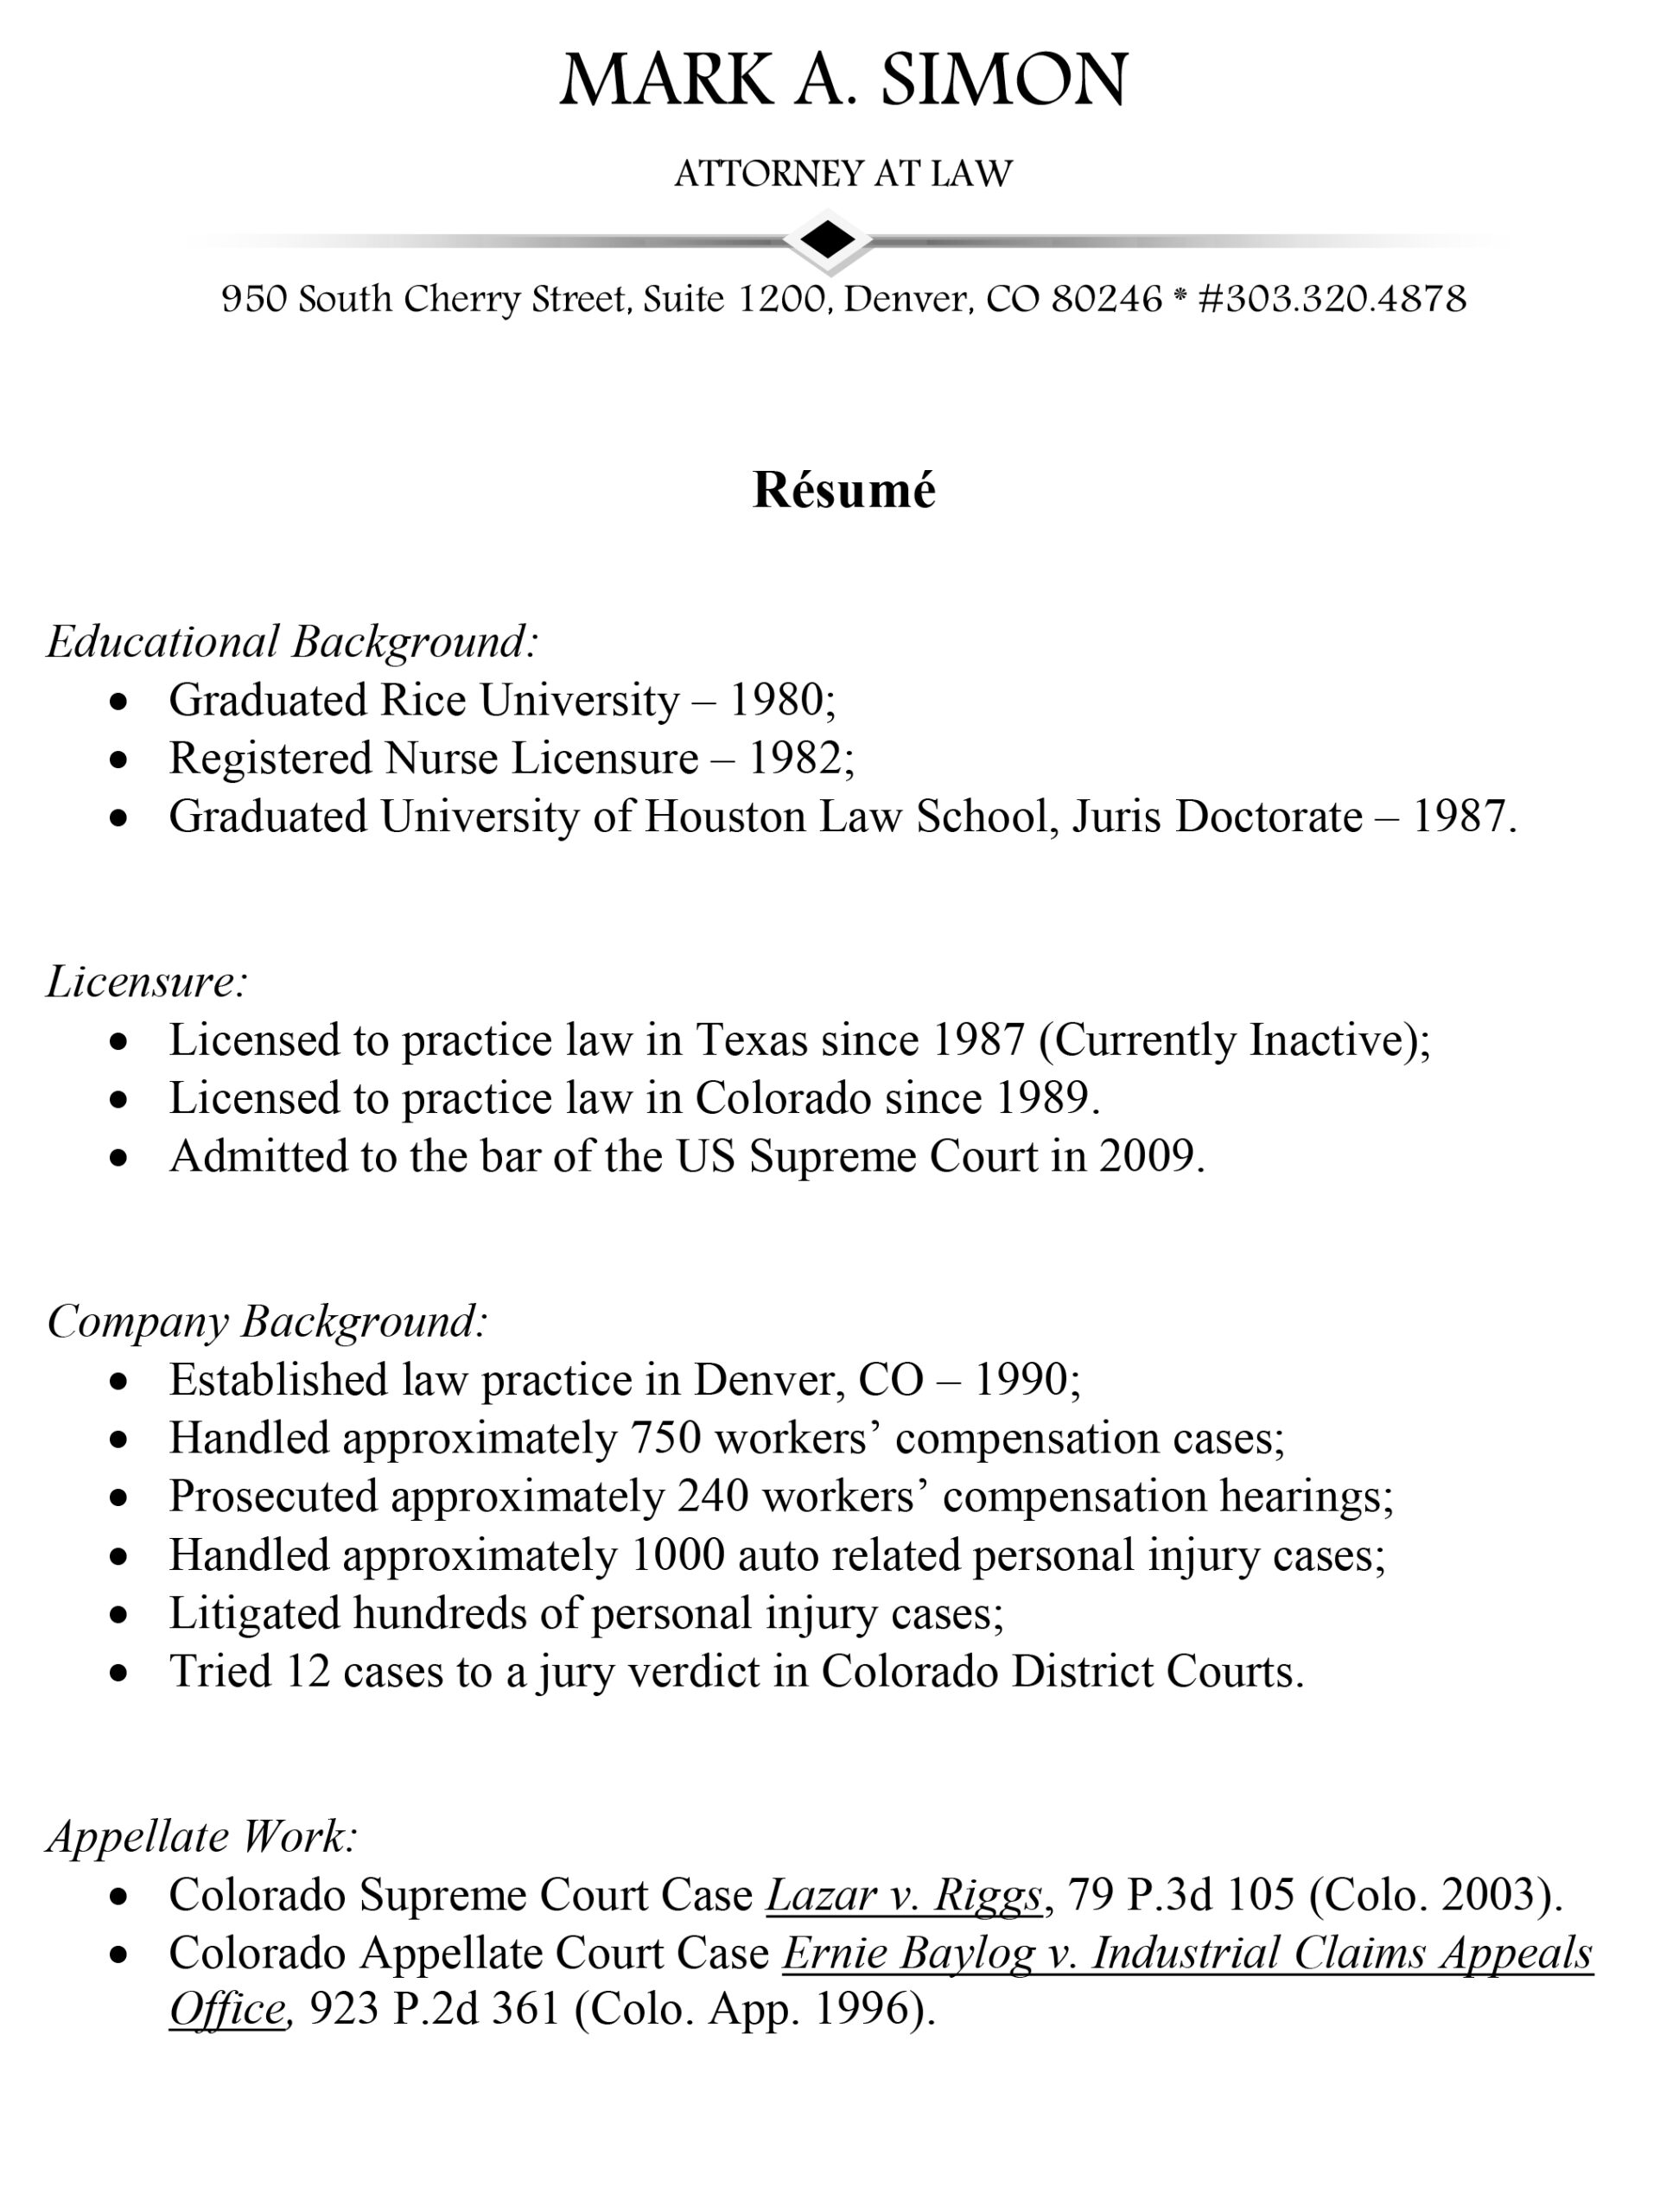 mark simon attorney at law personal injury workers comp resume tips for writing good Resume Personal Injury Attorney Resume